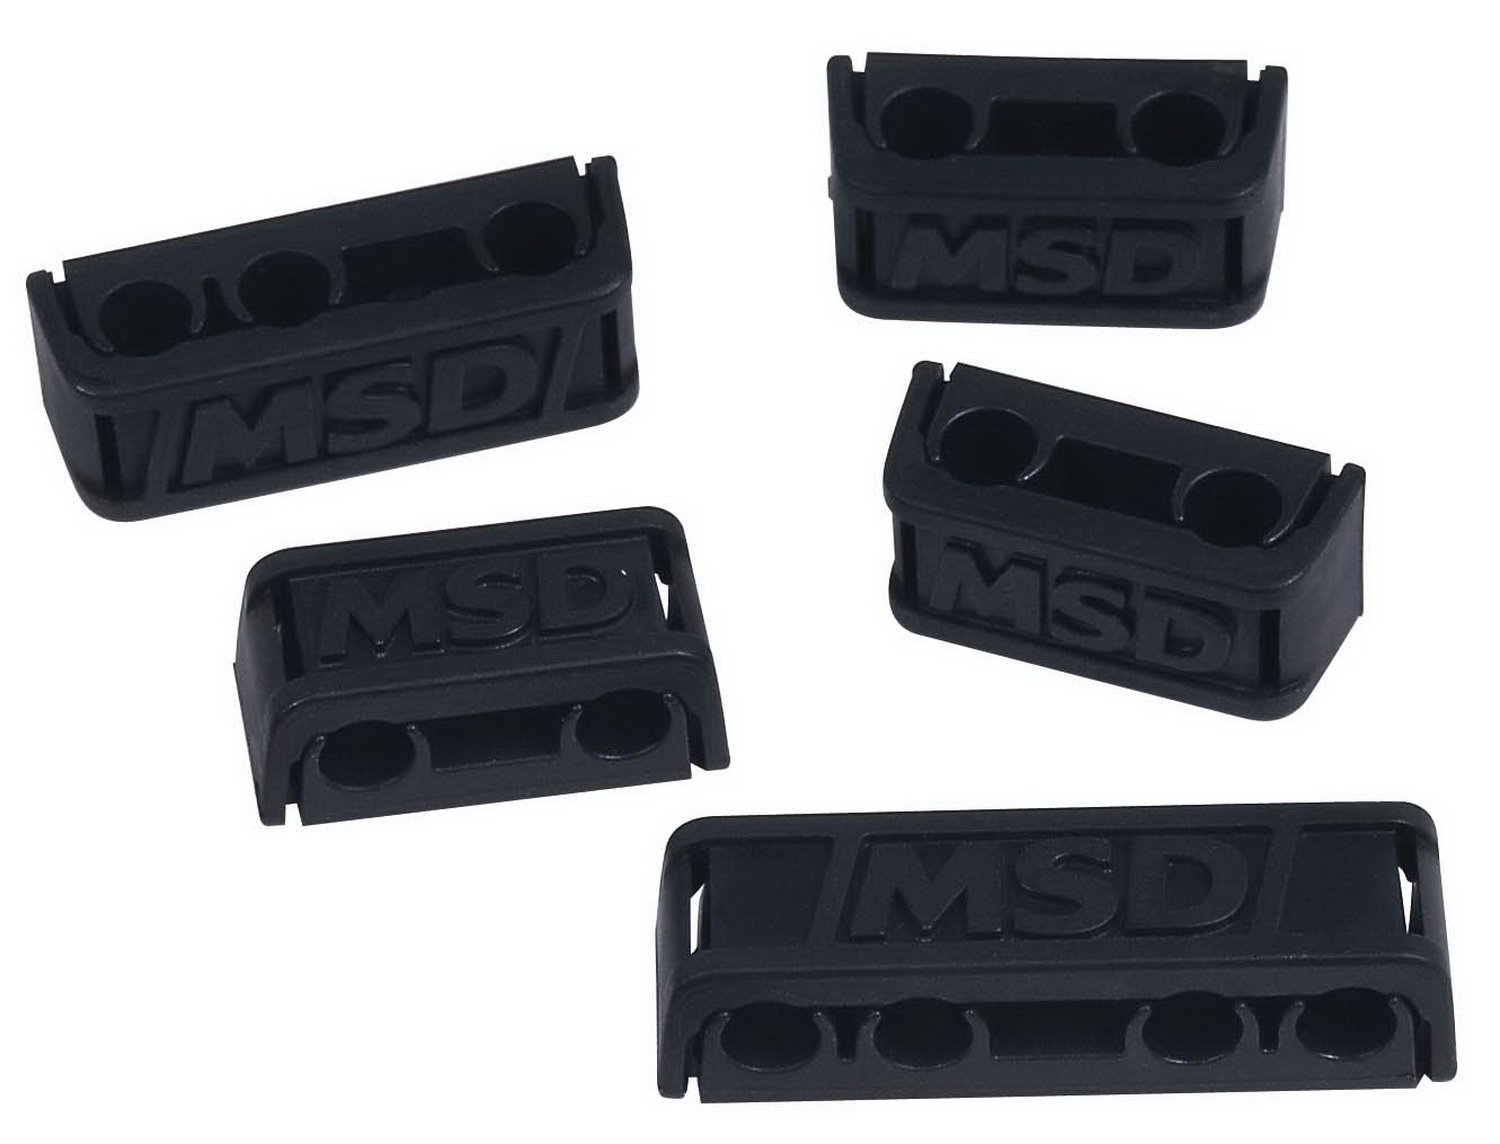 MSD 8843 Pro-Clamp Plug Wire Separator, (Set of 8) by MSD